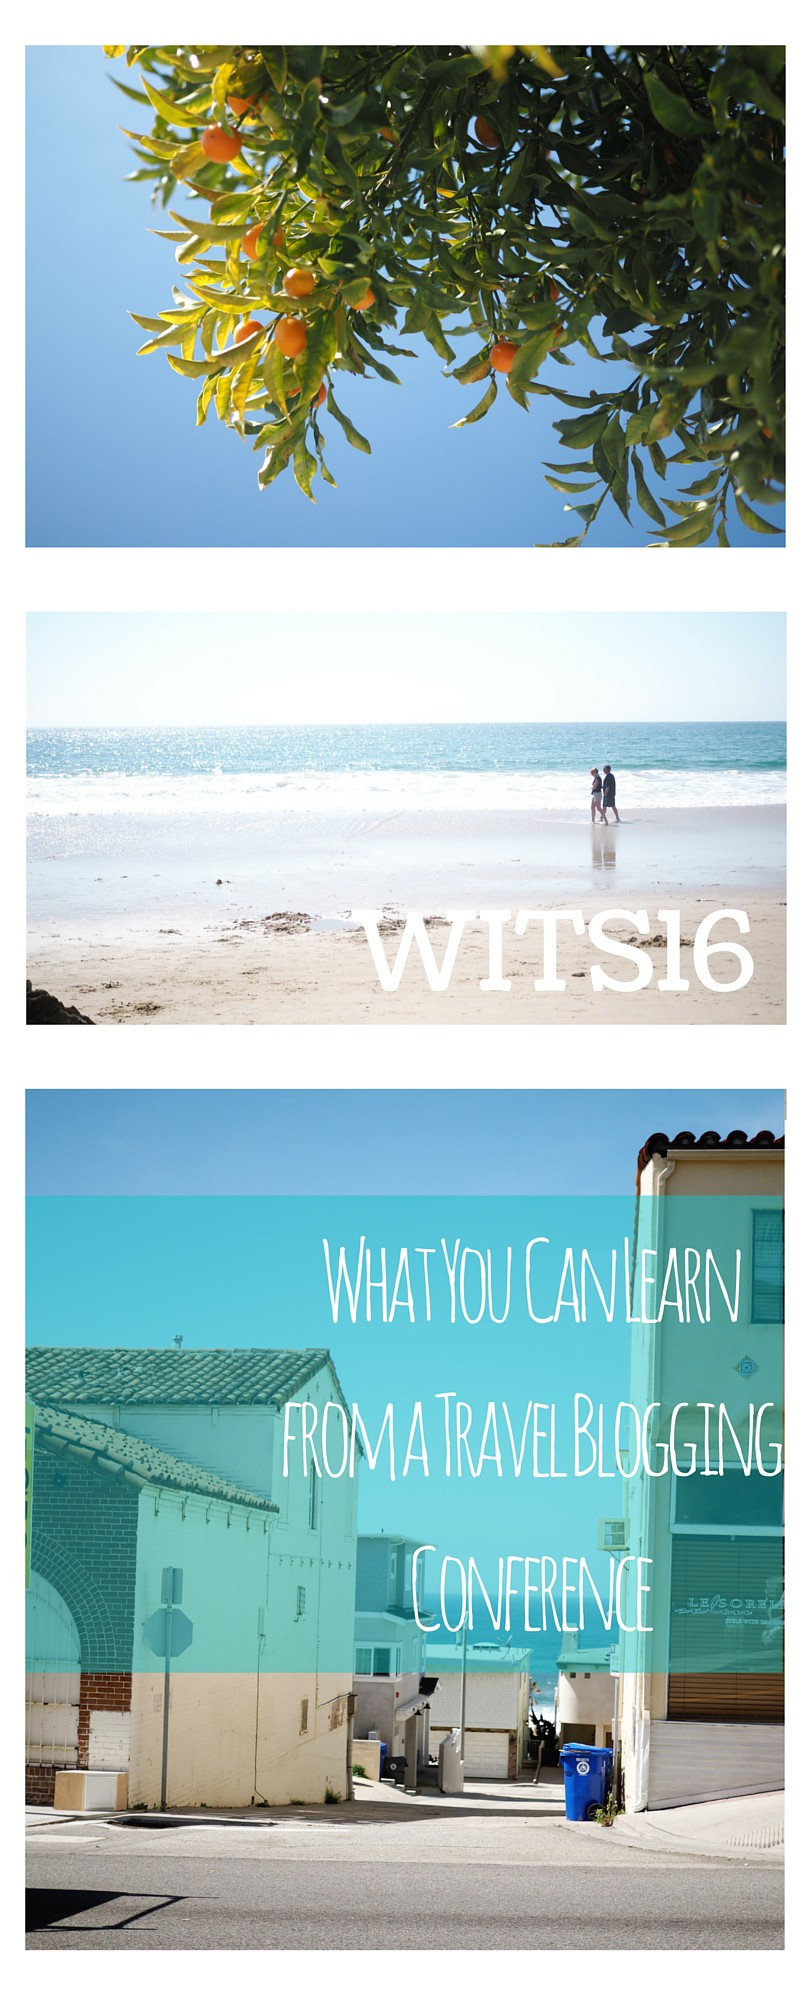 What You Can Learn at a Travel Blogging Conference